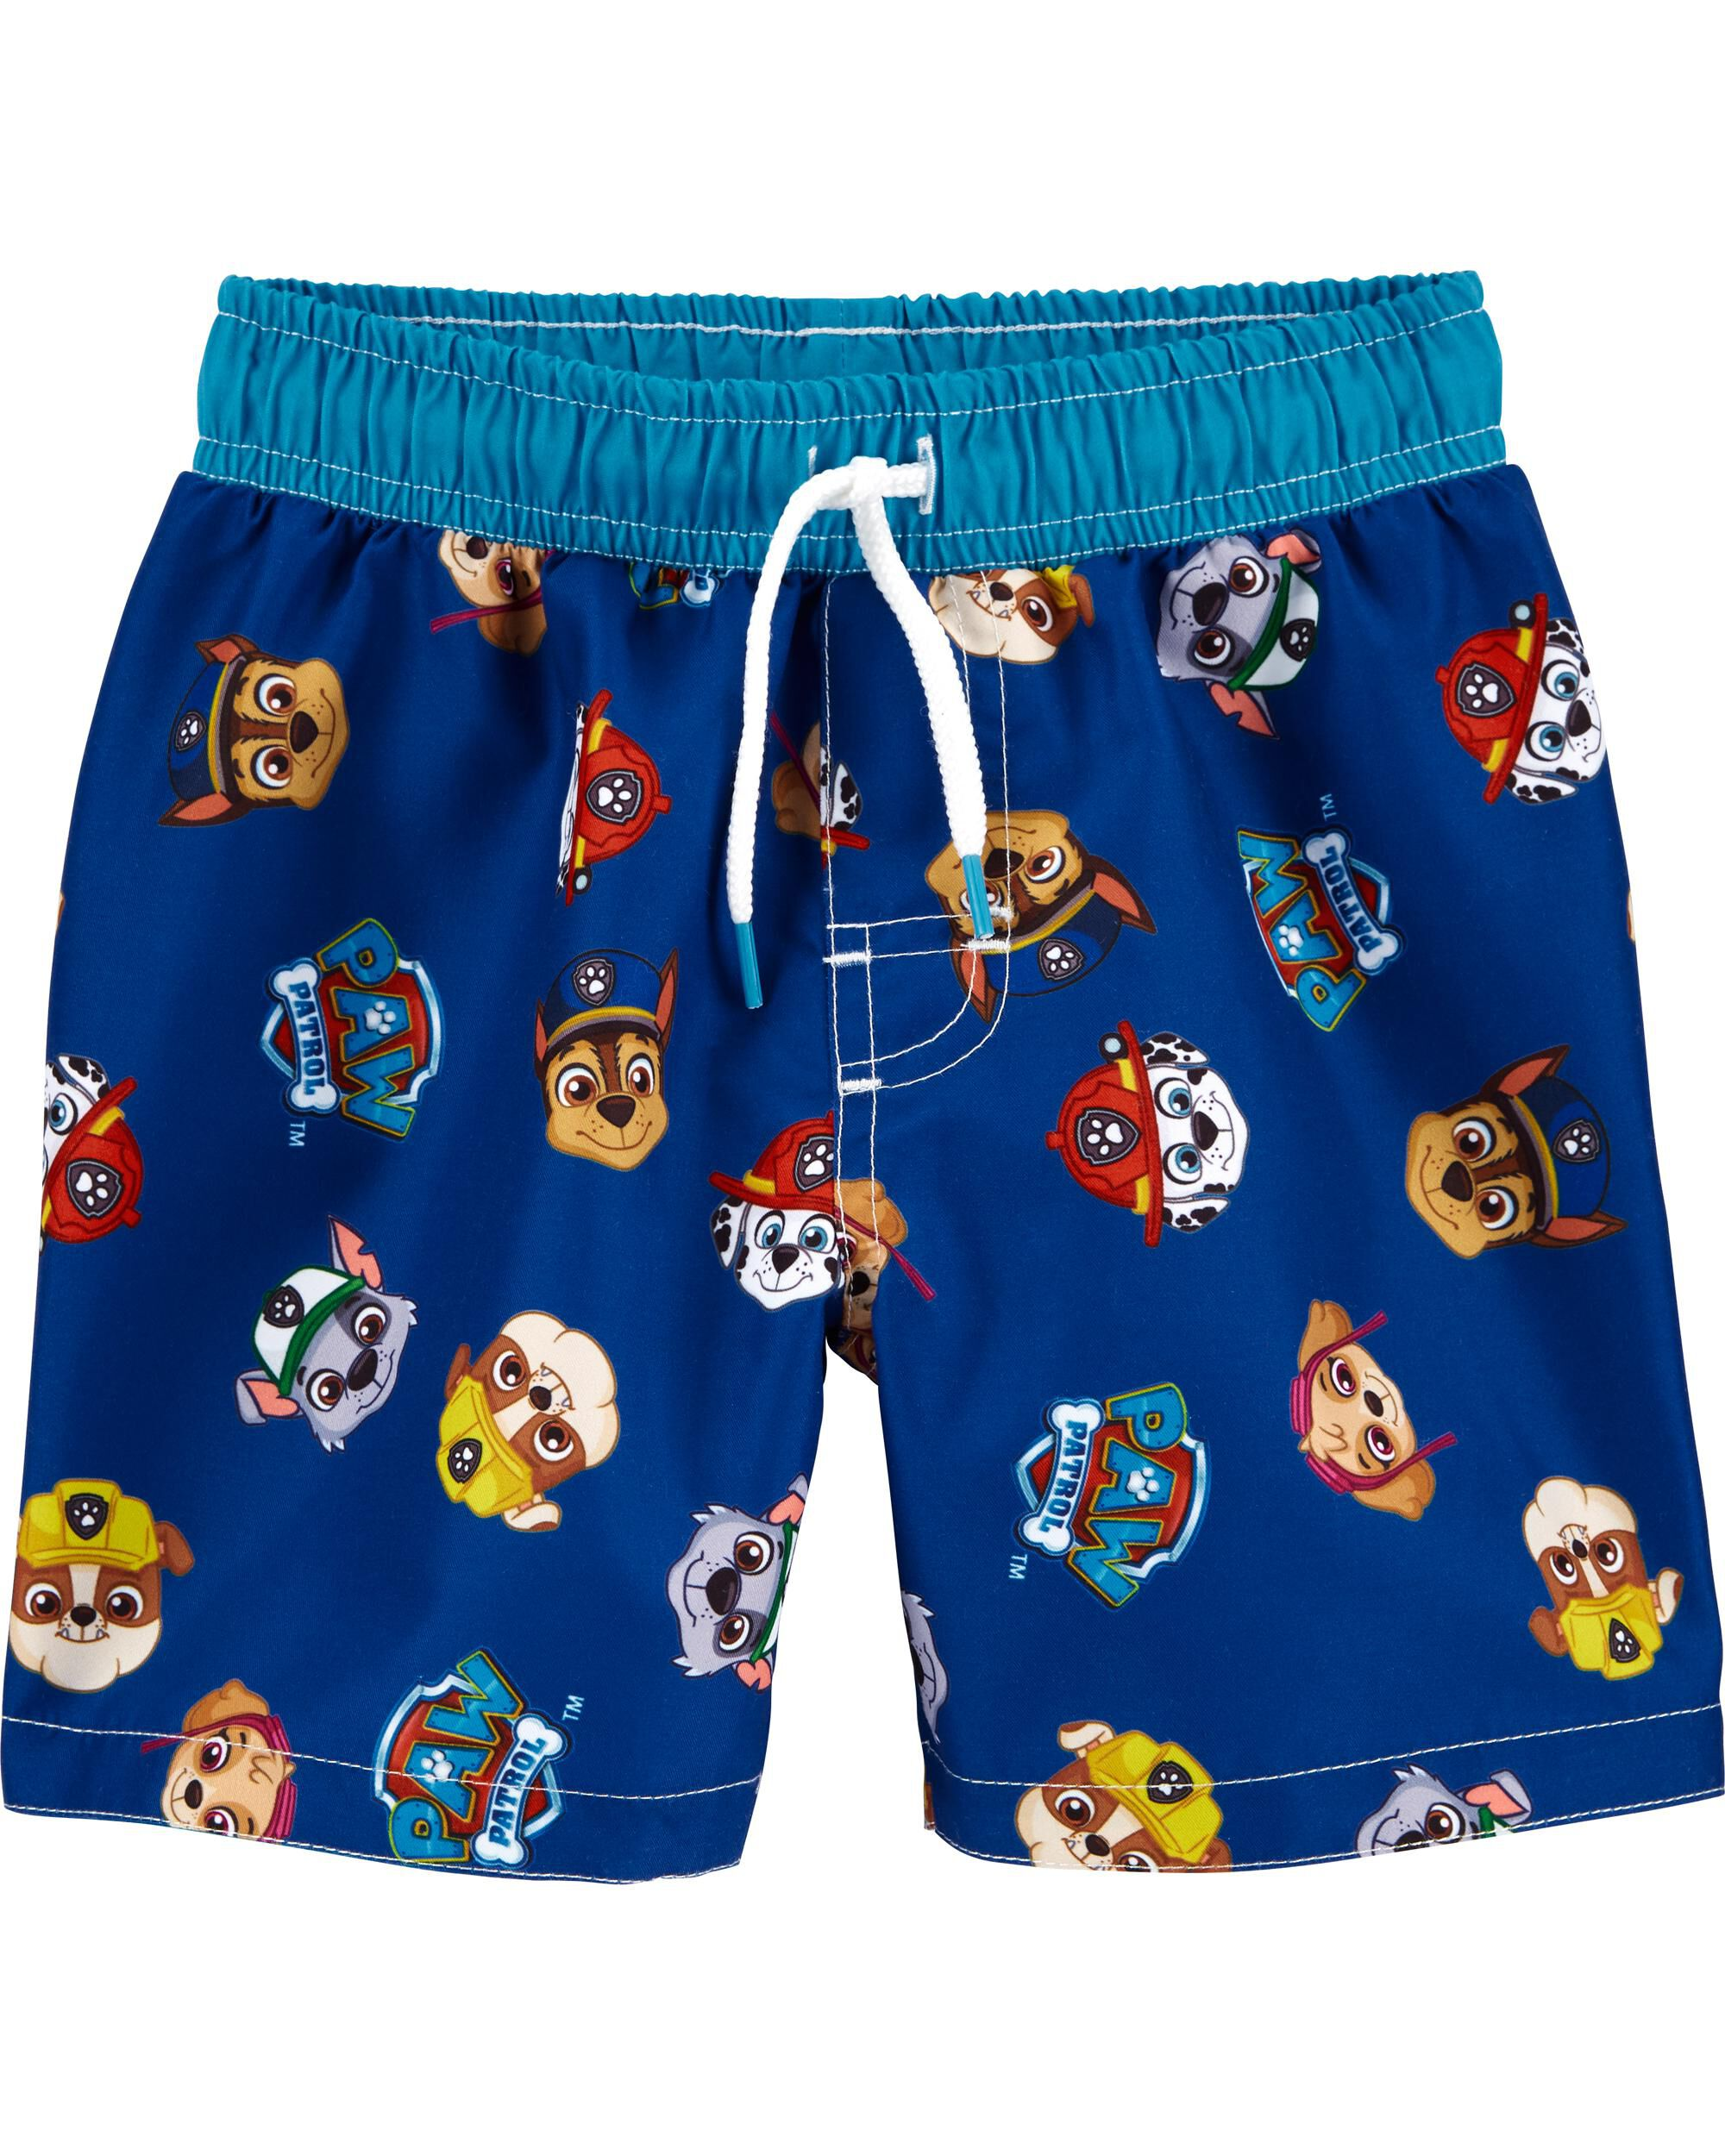 Boys Official Licensed Paw Patrol Blue Swimming Shorts Swim Trunk Shorts